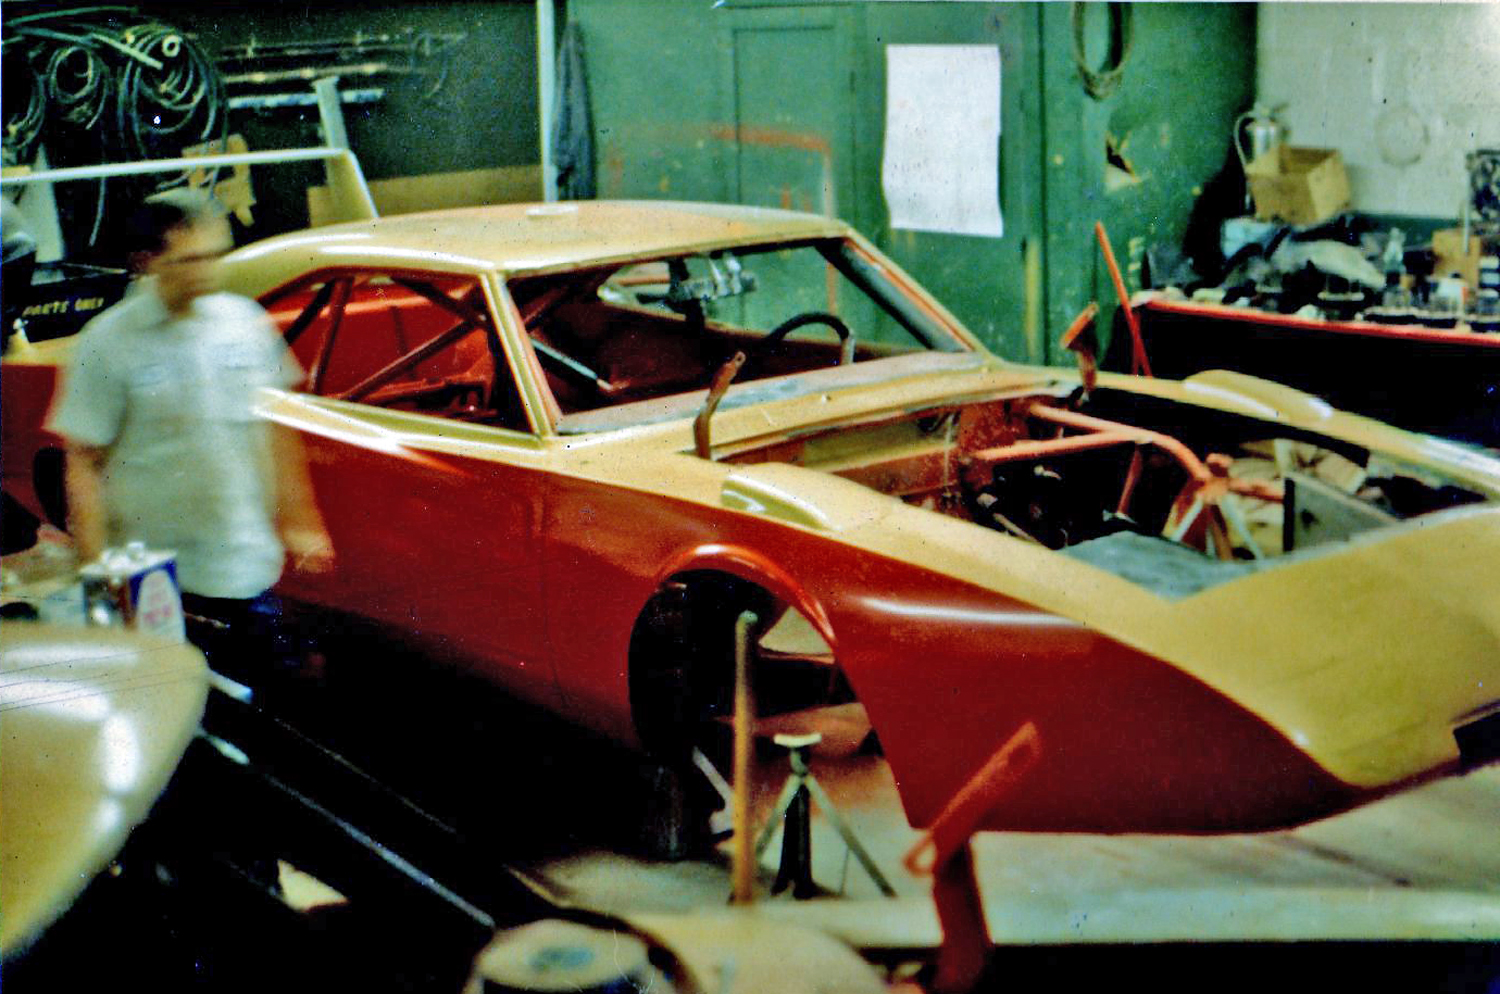 Photos also Fast Furious 6 Le Auto as well Showthread further 1970 Plymouth Hemicuda furthermore 224 Dodge Charger 2014 Rt Wallpaper 3. on 1969 dodge charger daytona and 500